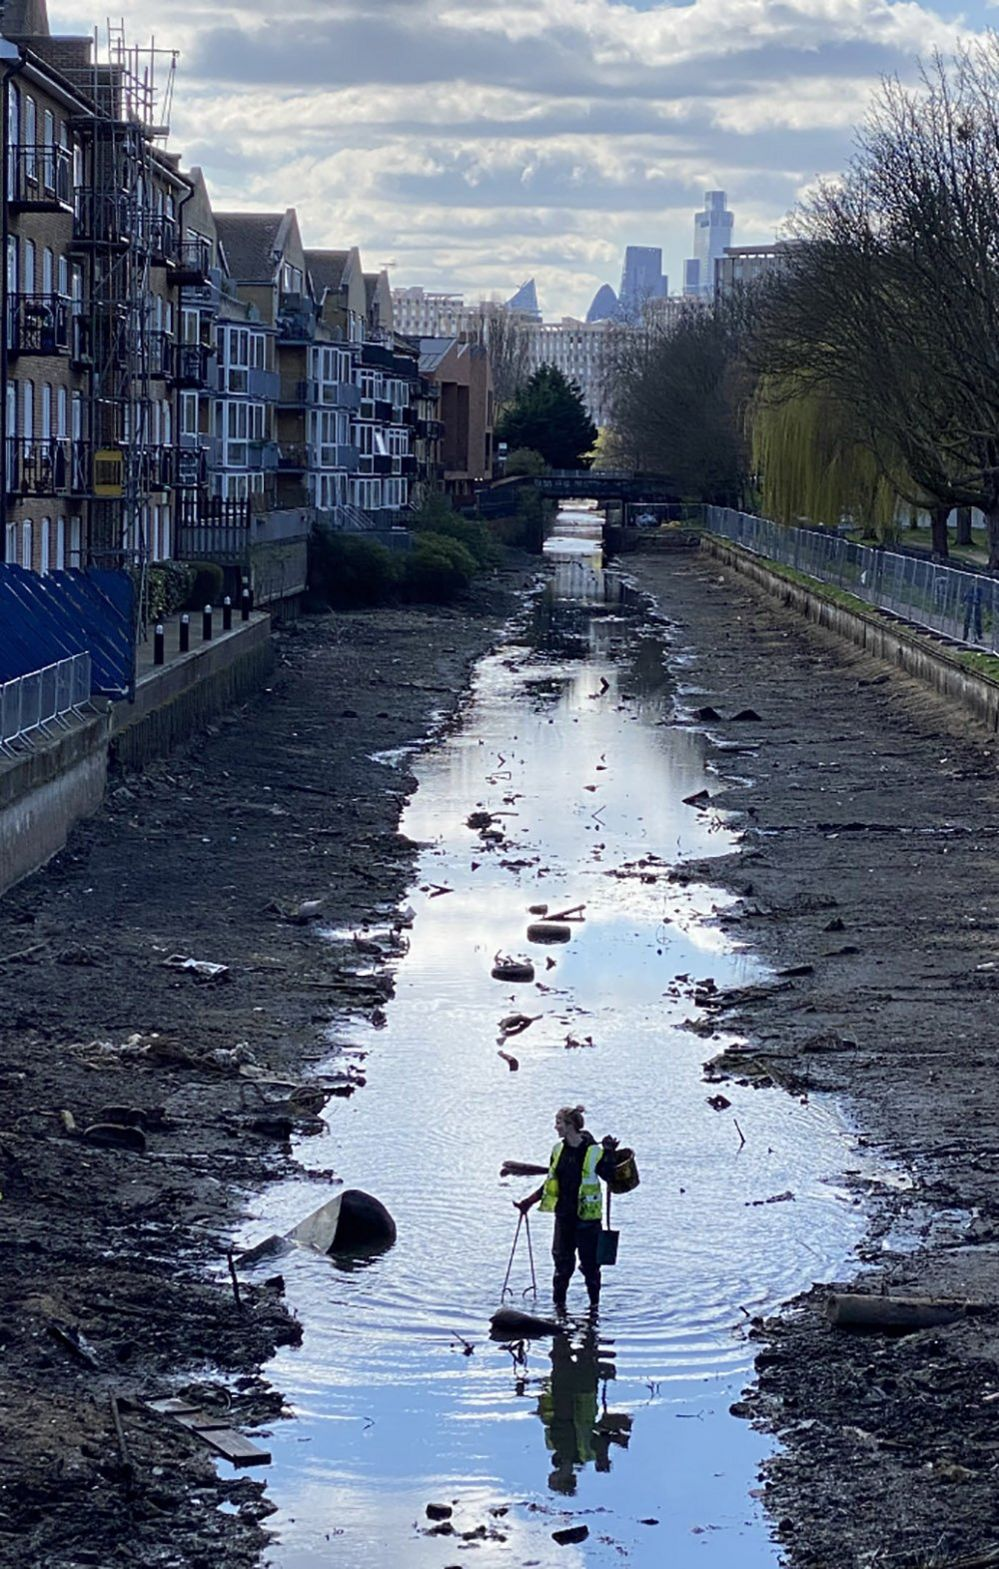 A volunteer litter-picker removes rubbish from the drained Hertford Union Canal